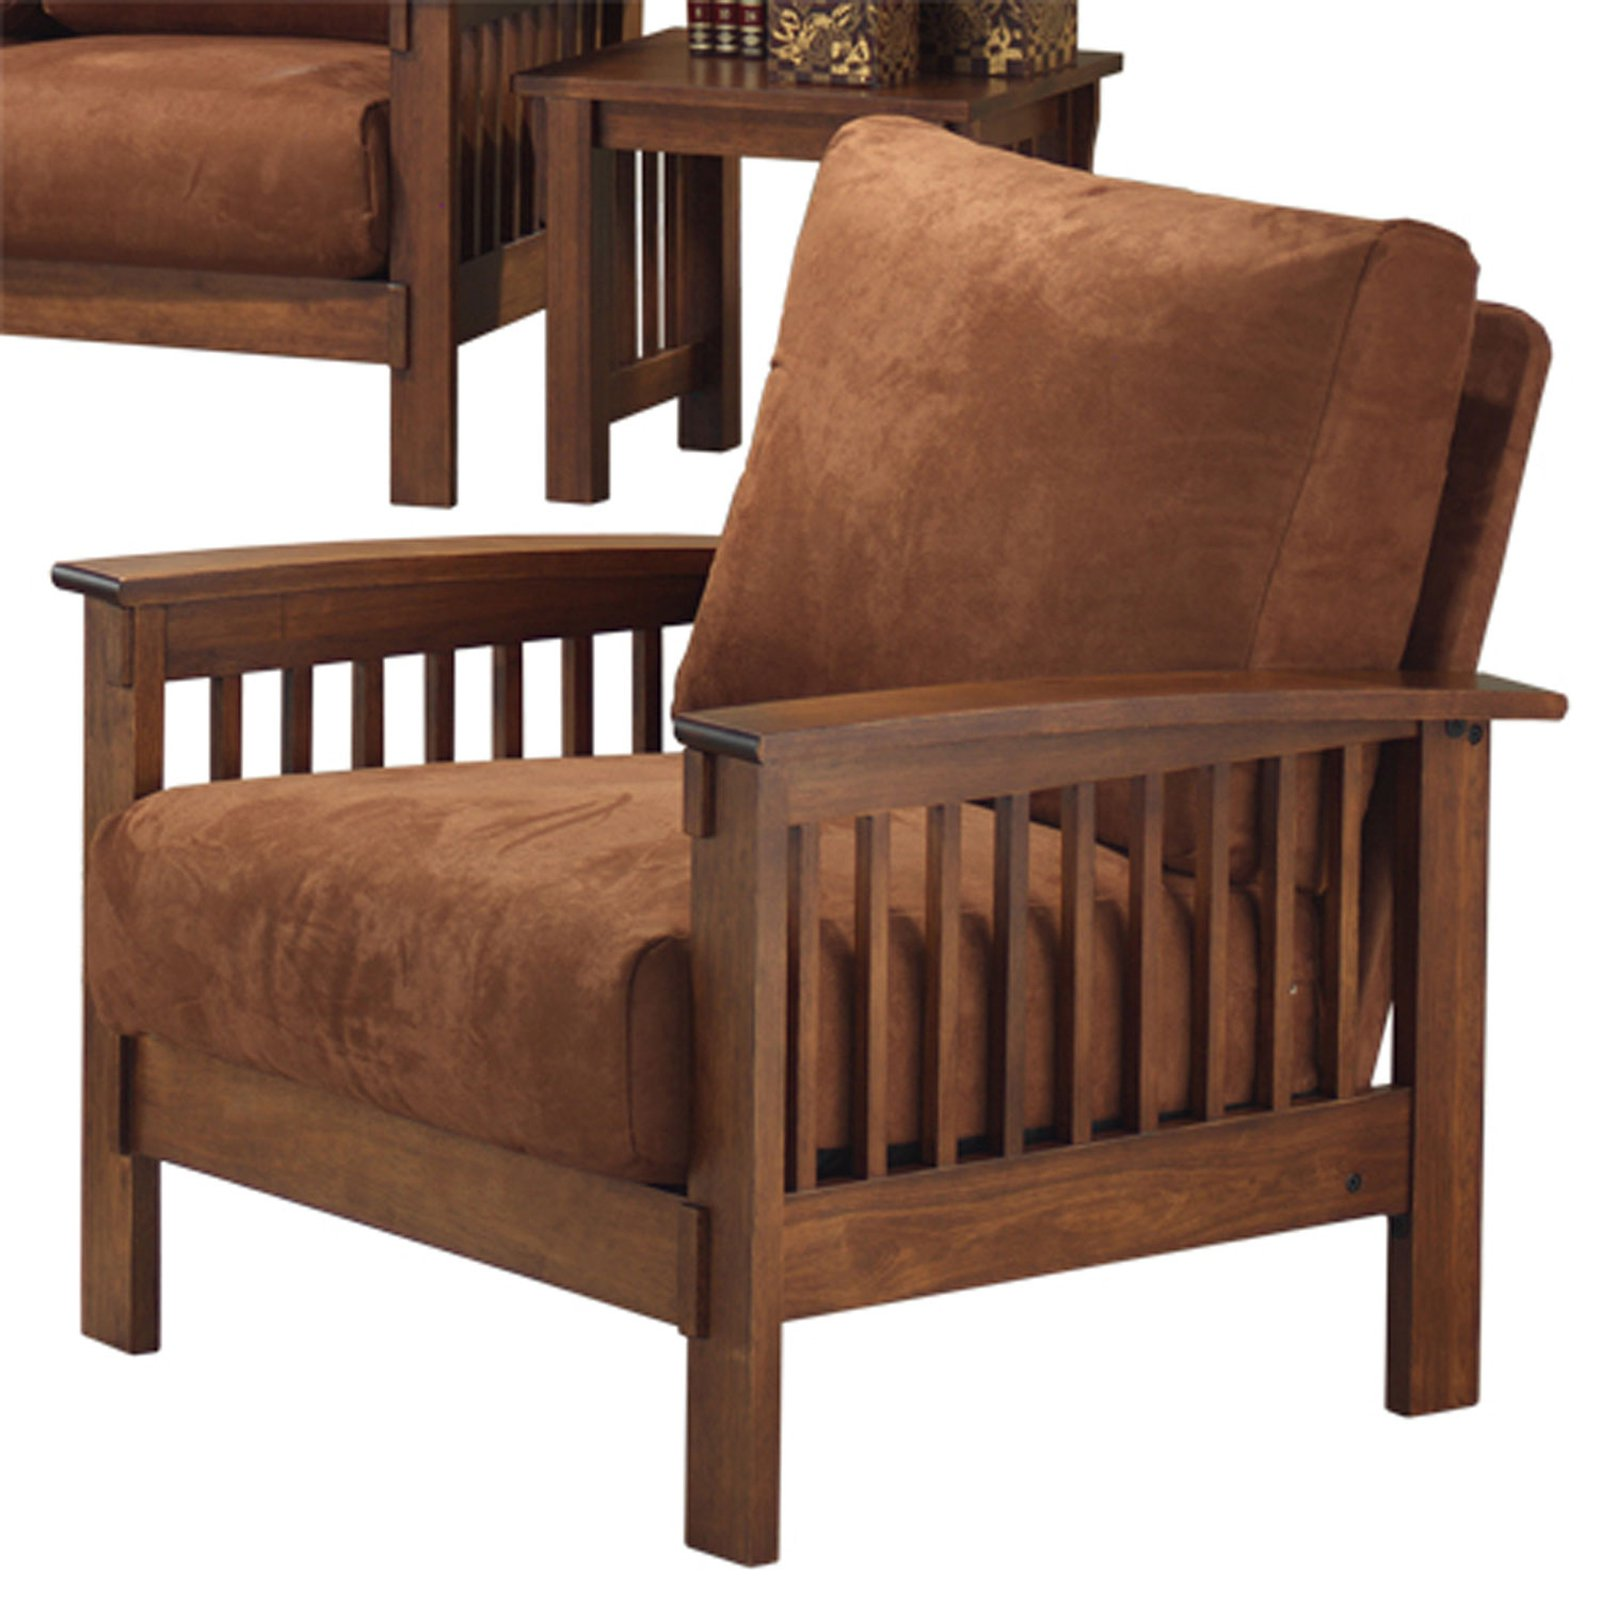 Weston Home Mission Rust Champion Accent Chair, Mission Accent Chair